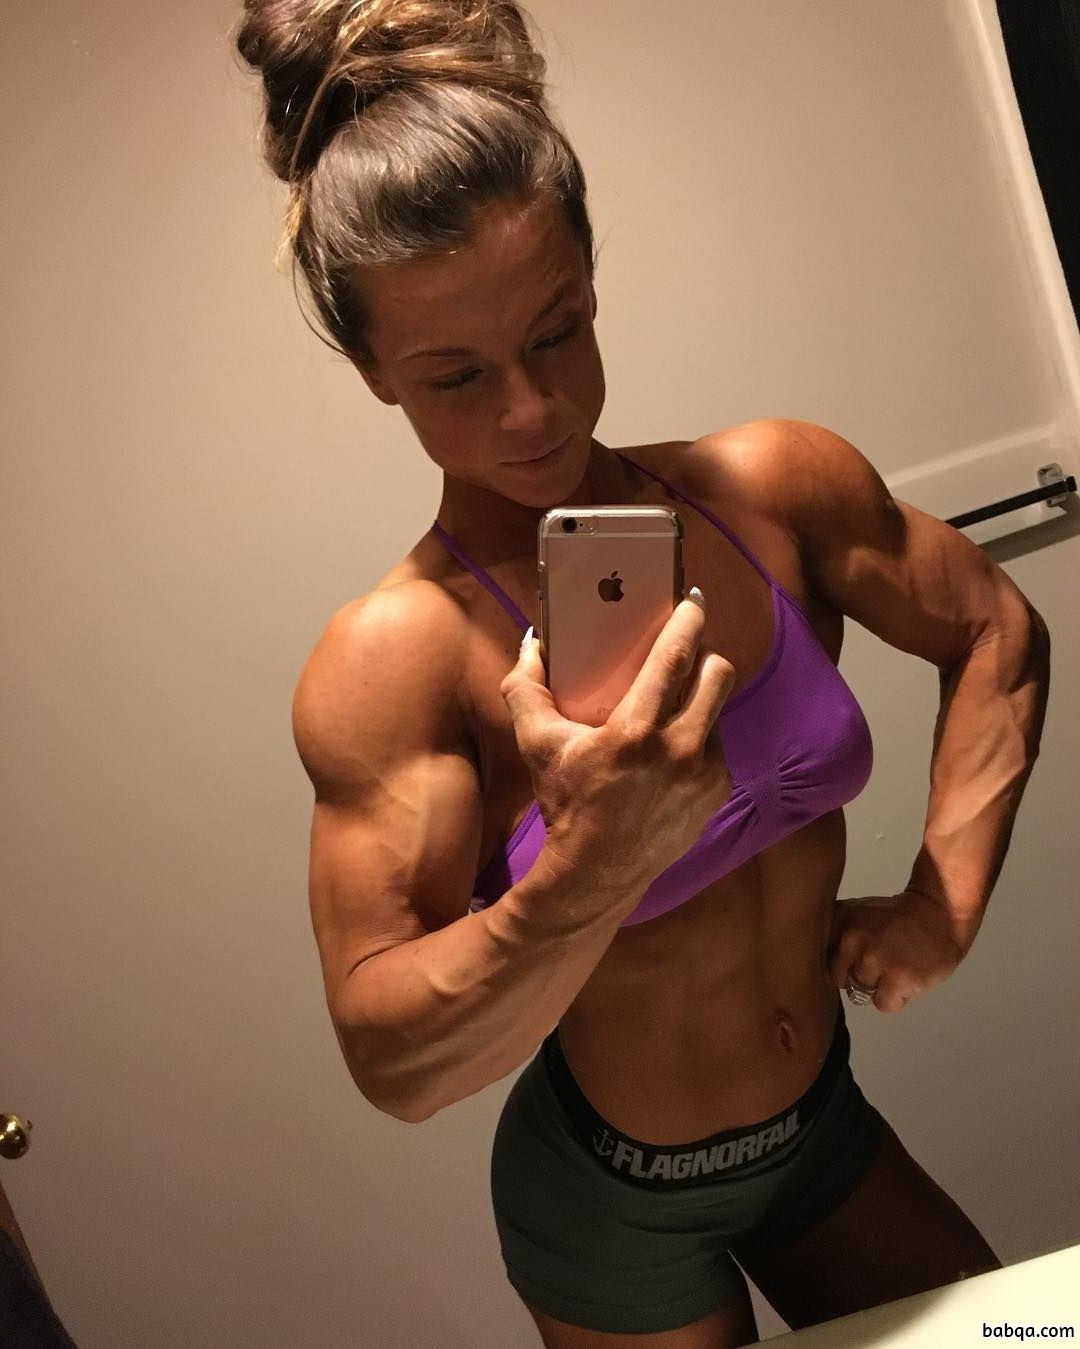 spicy female bodybuilder with muscular body and toned ass pic from insta